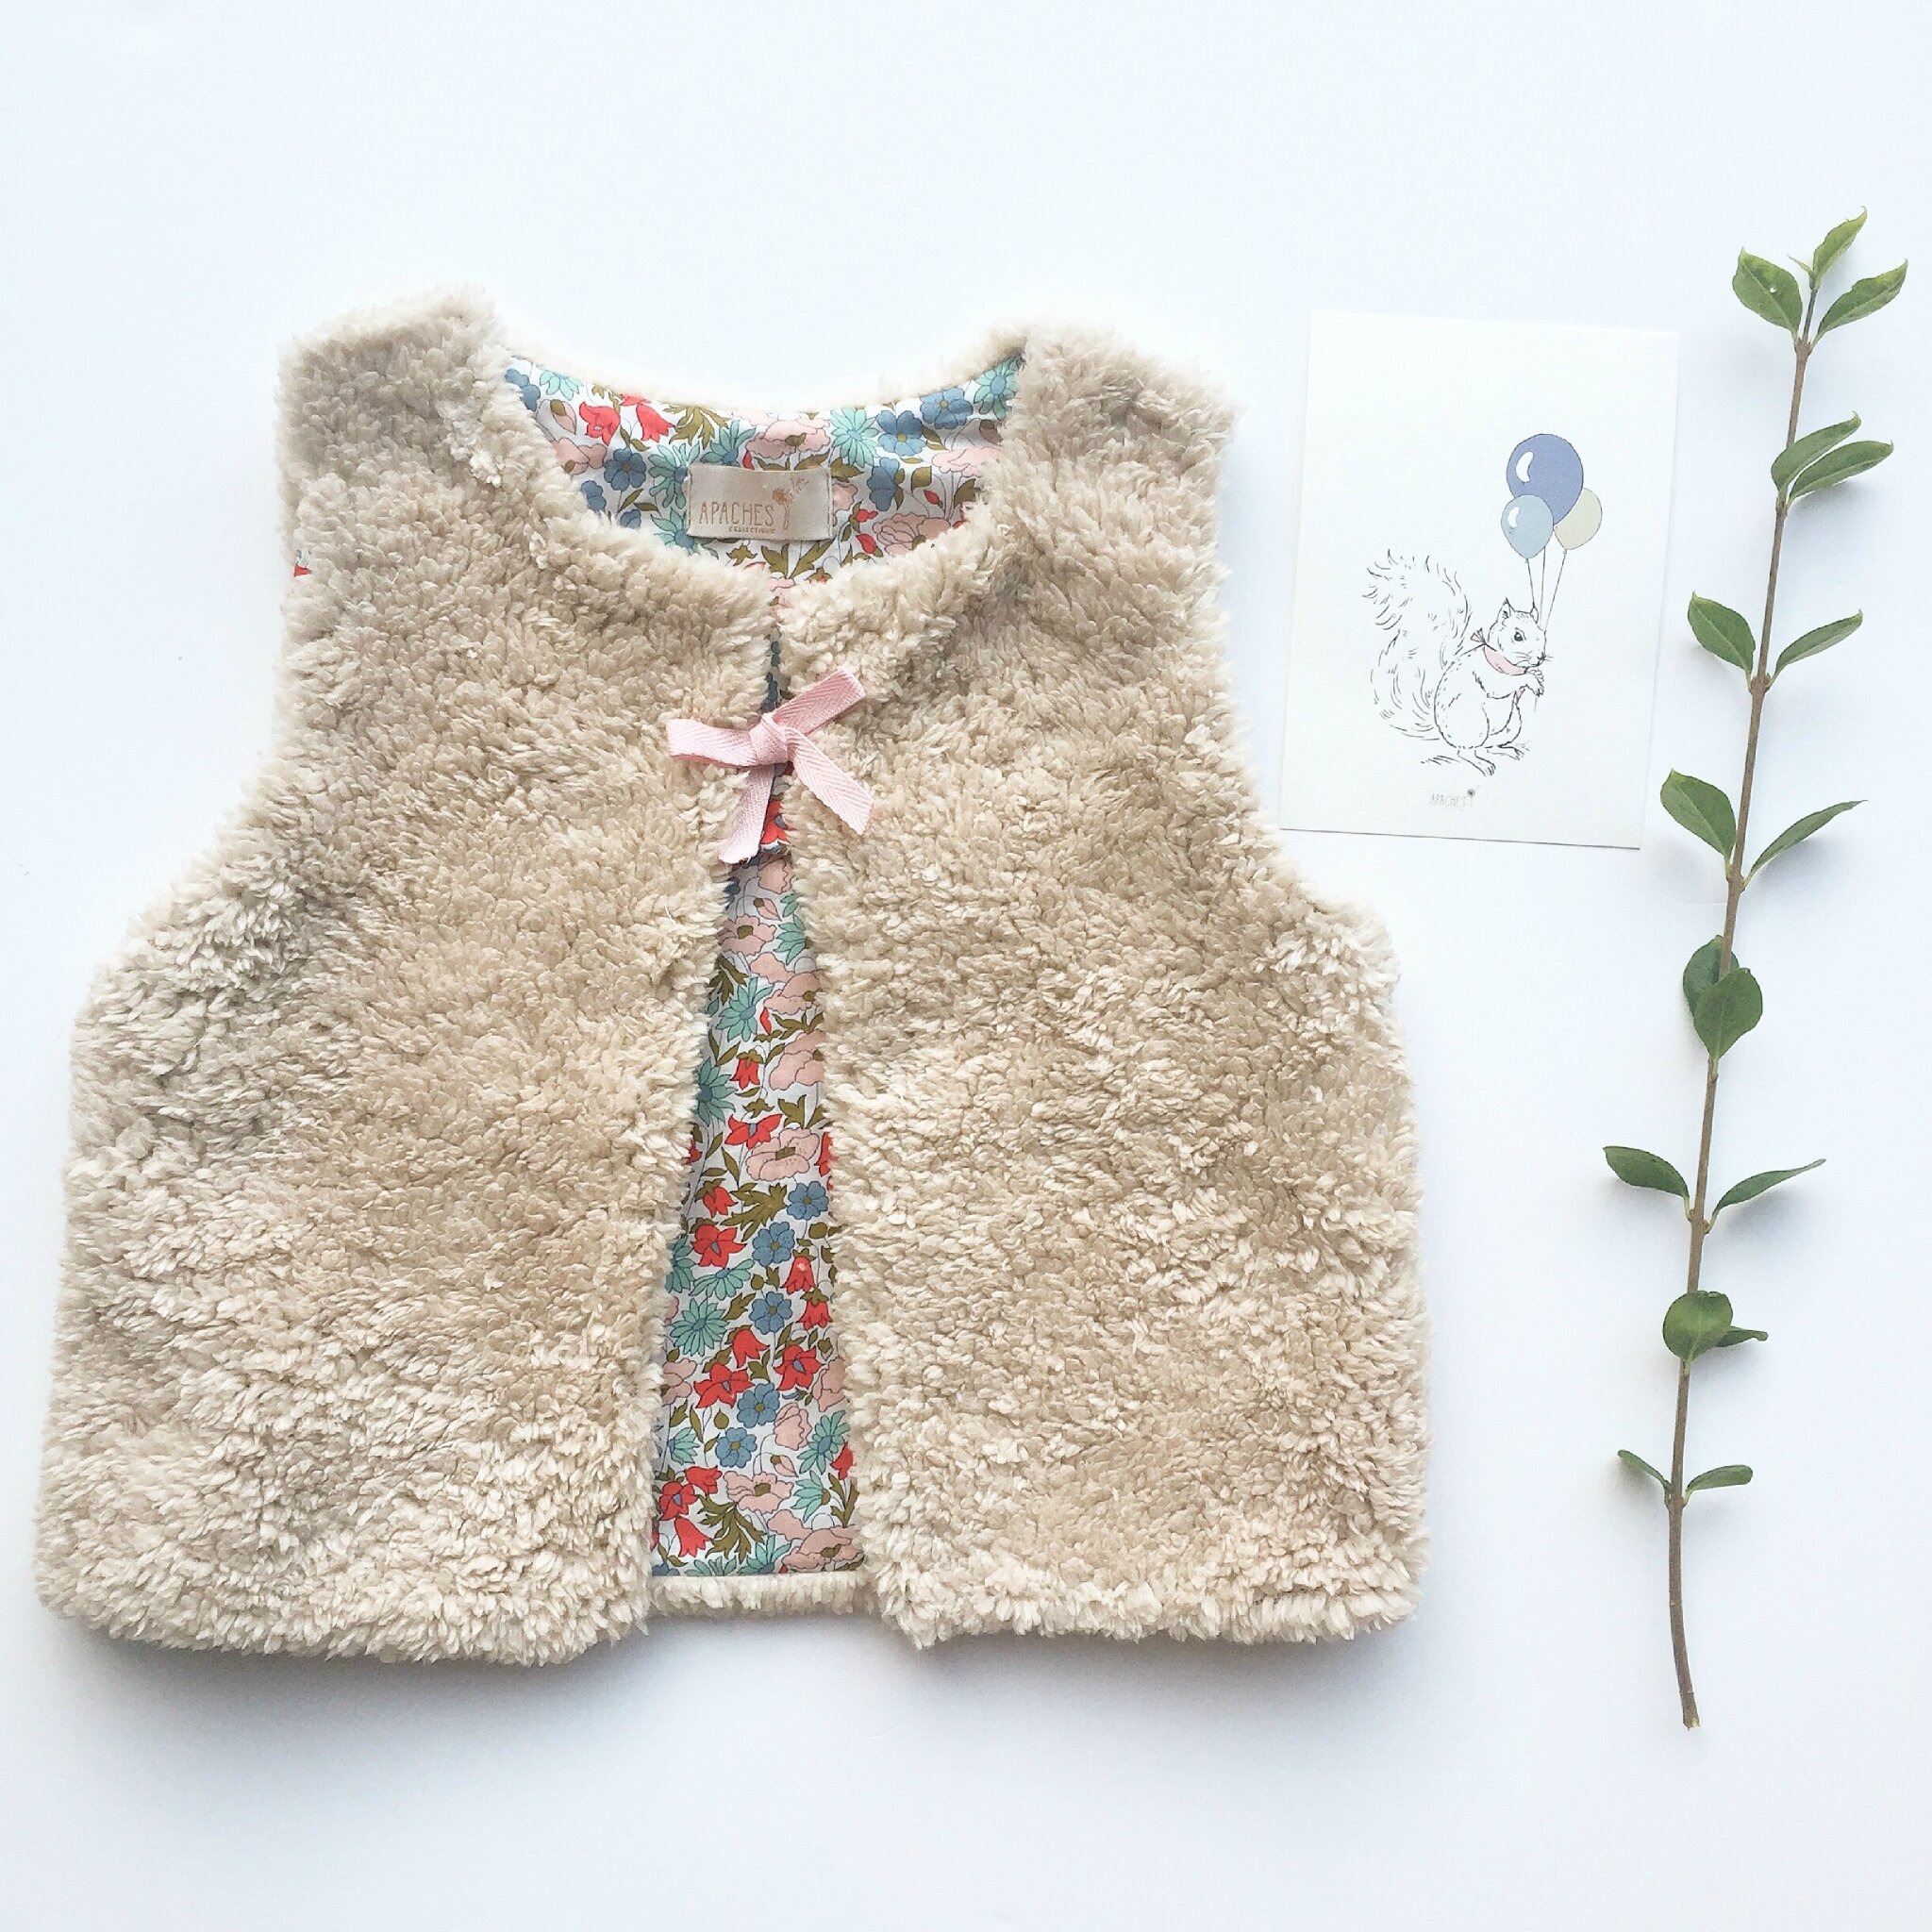 Gilet Sakari - Liberty poppy & daisy blush